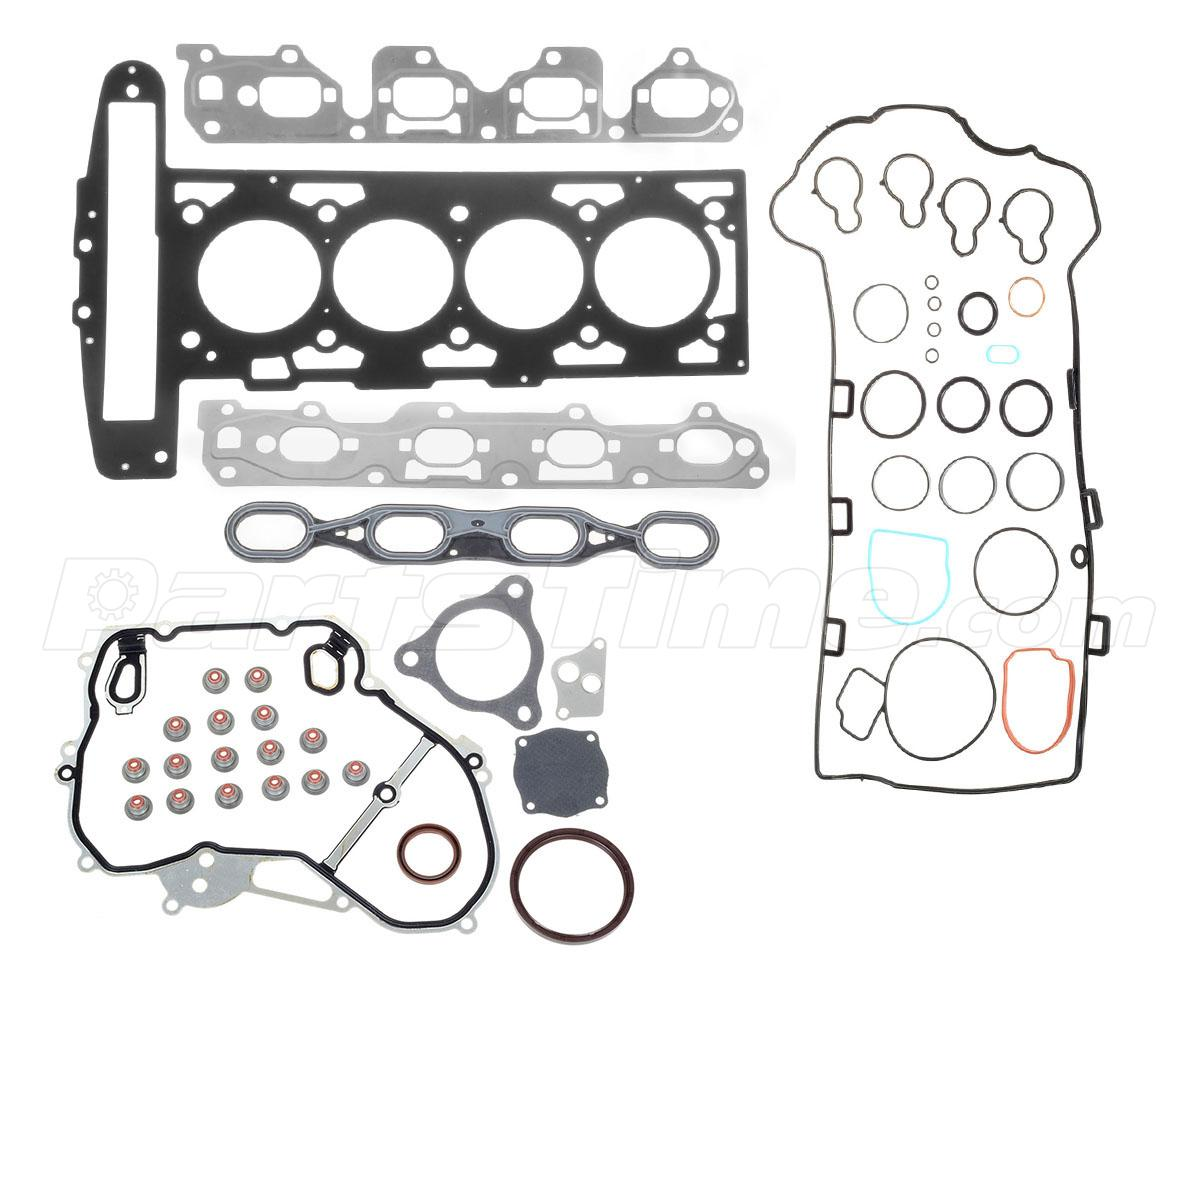 Service manual [2004 Saturn Vue Head Gasket Replacement